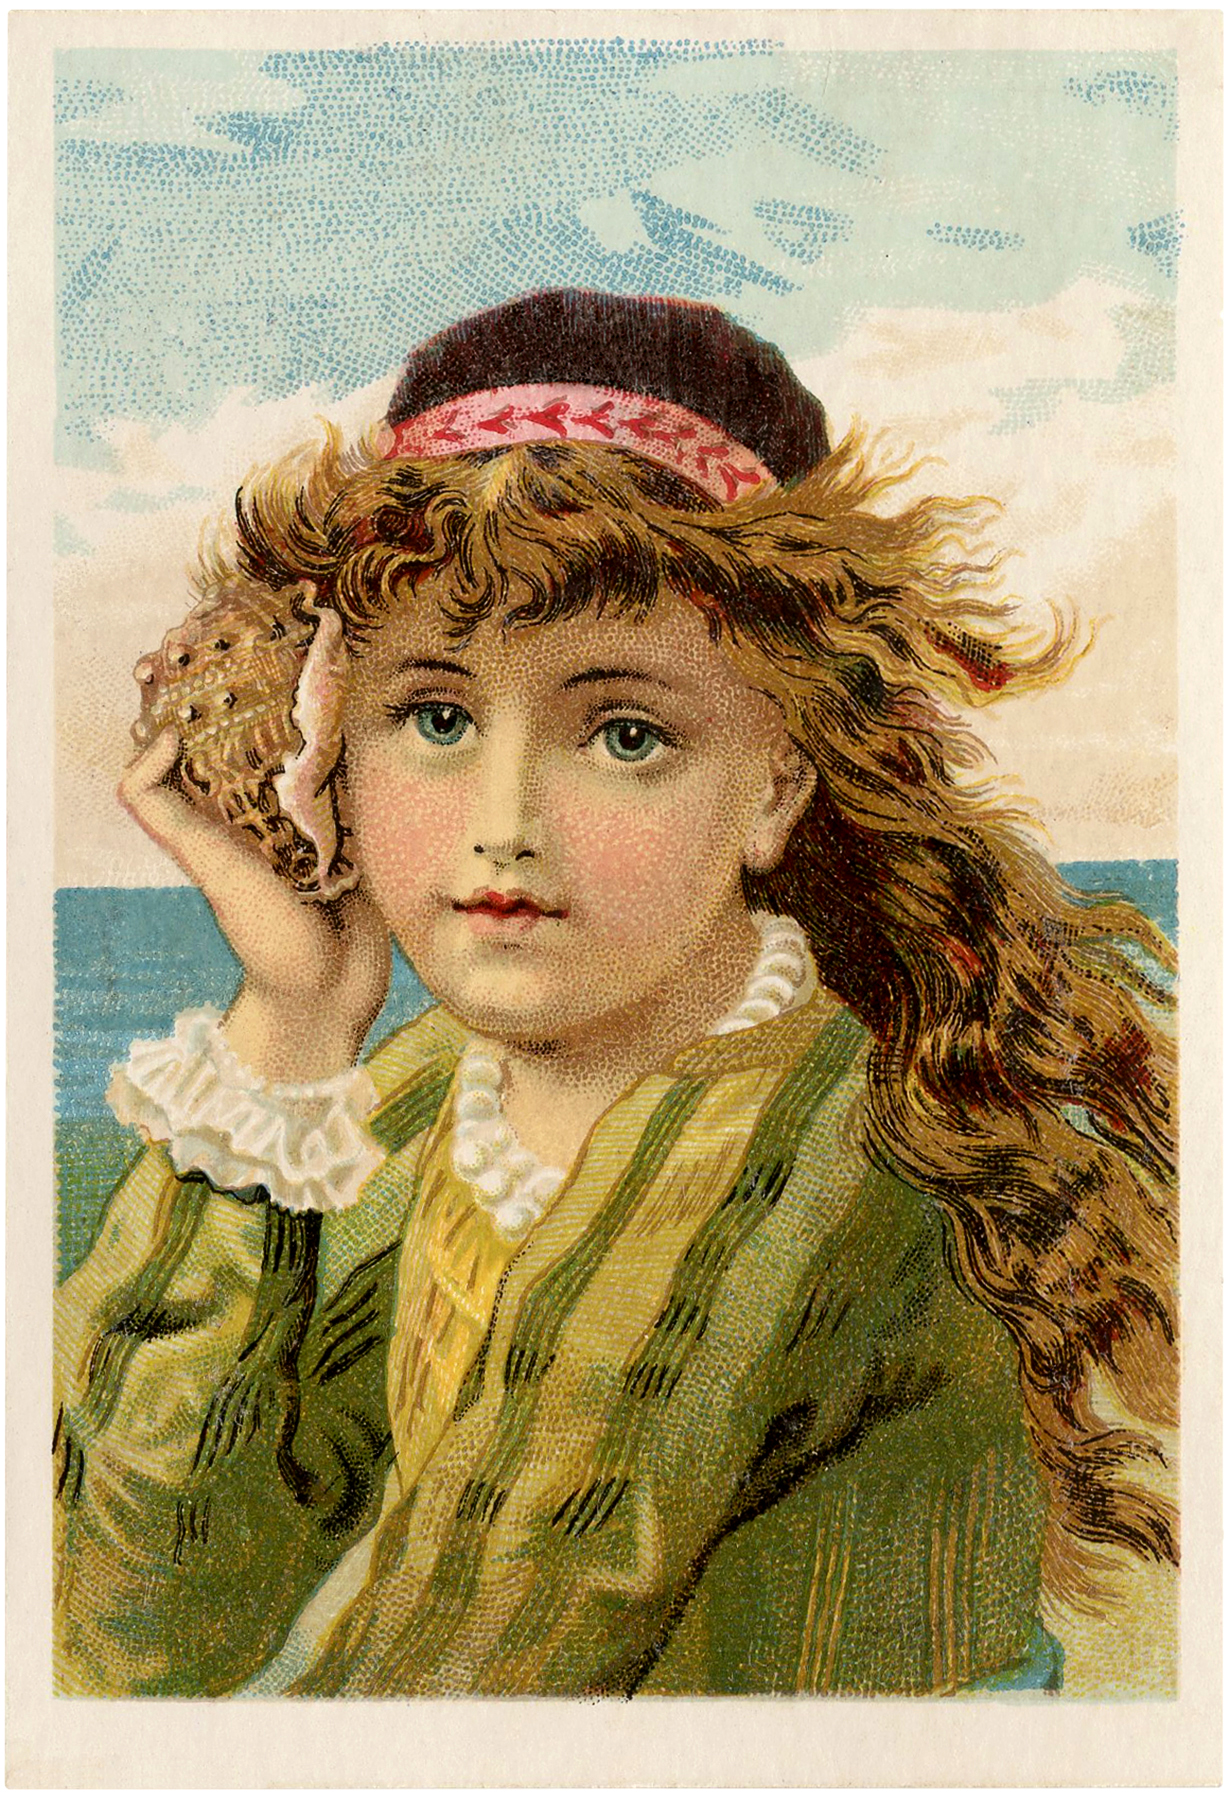 1000 Images About Retro Vintage On Pinterest: Stunning Vintage Seashell Girl Image!